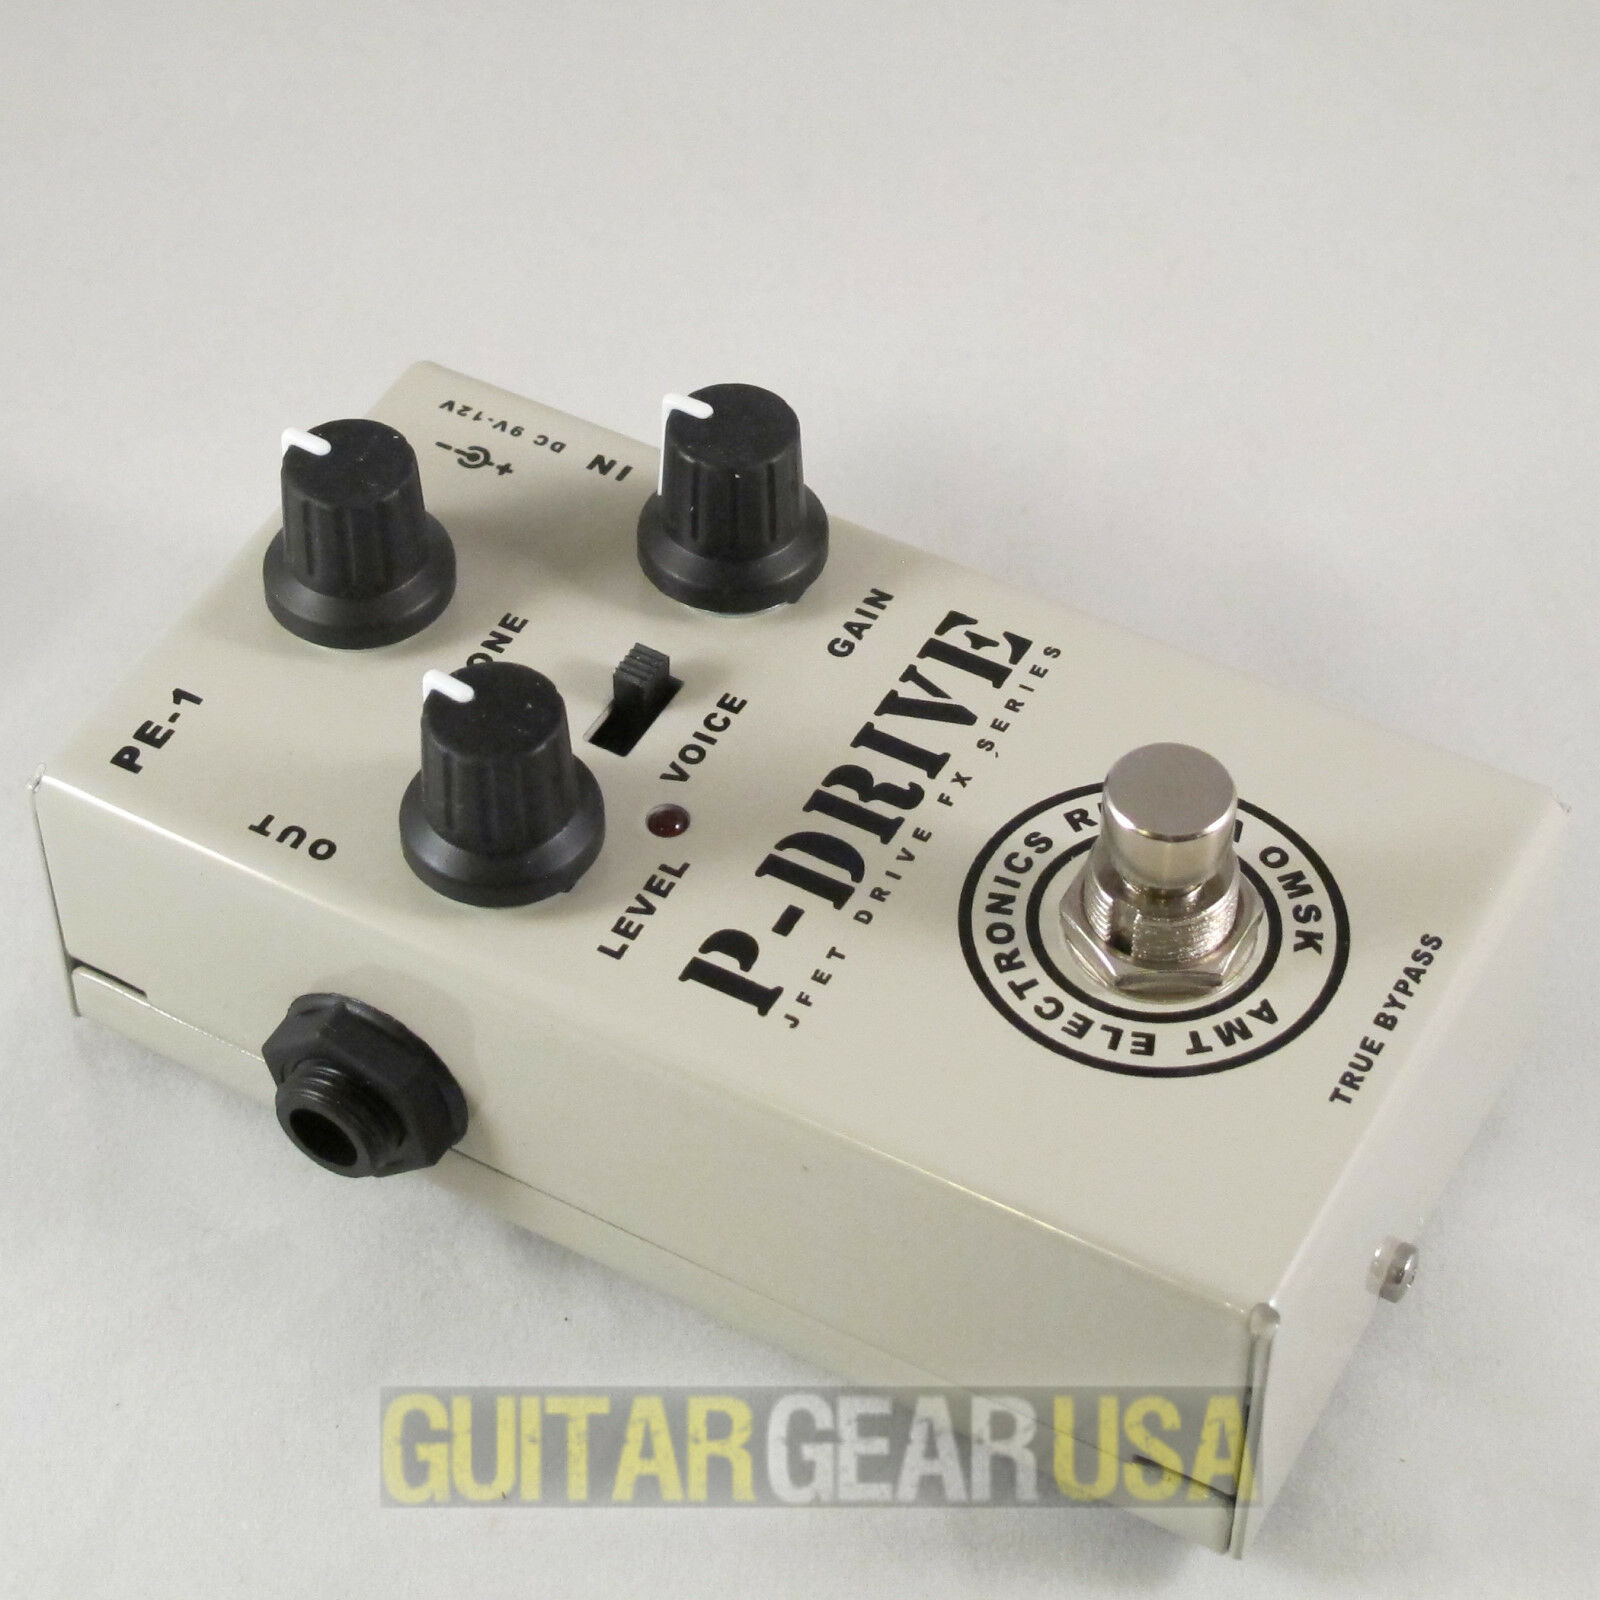 AMT Electronics  P-Drive  - JFET distortion pedal (PE-1) - emulates Peavey 5150